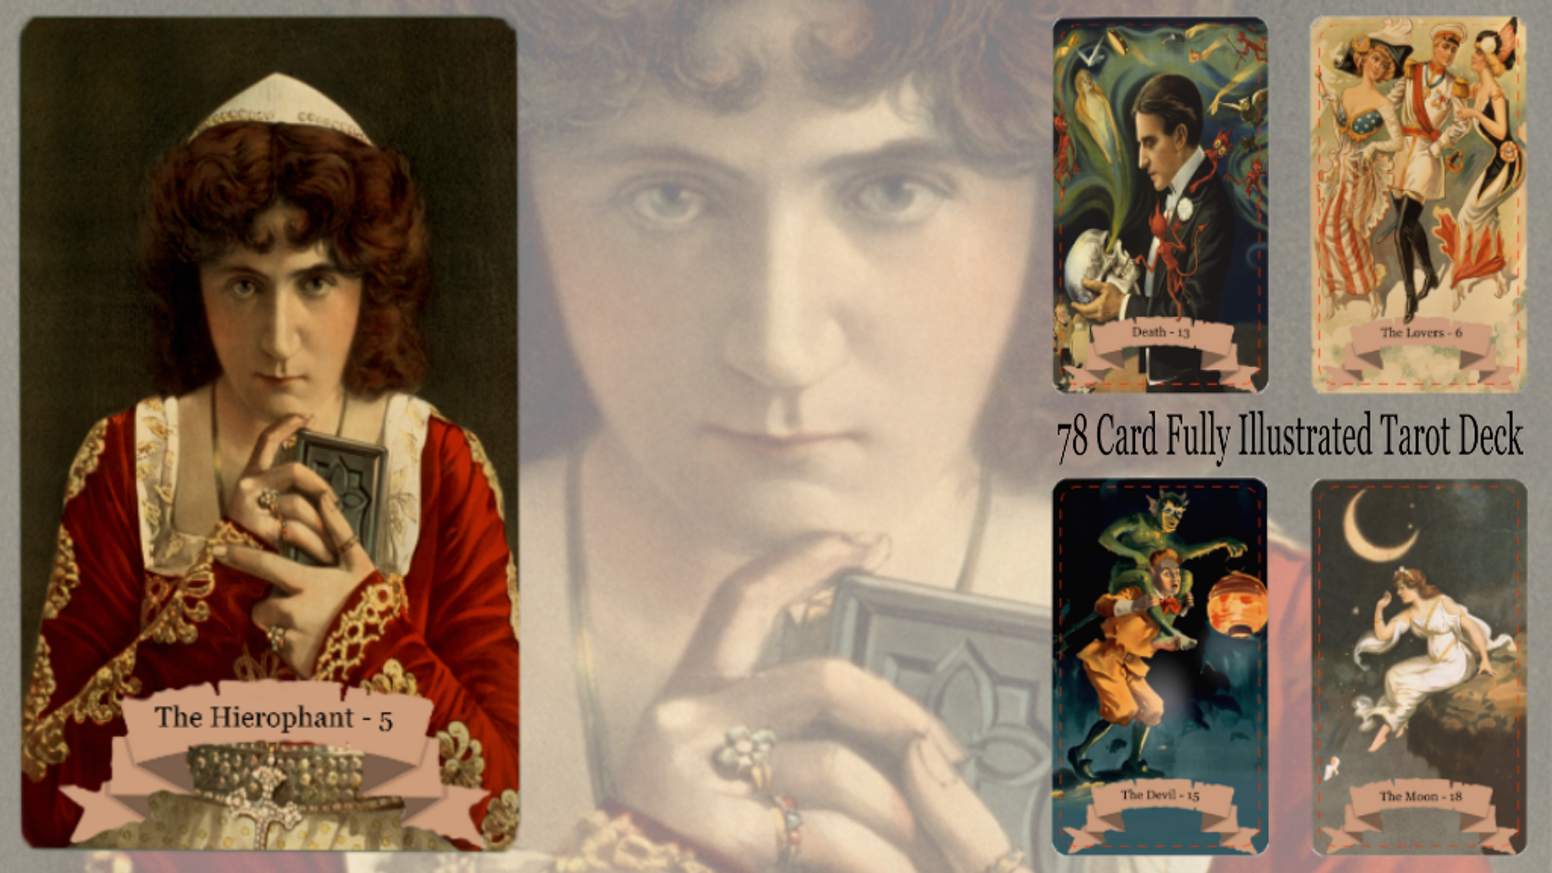 Tarot Card Deck based on Vintage American Theater Posters by